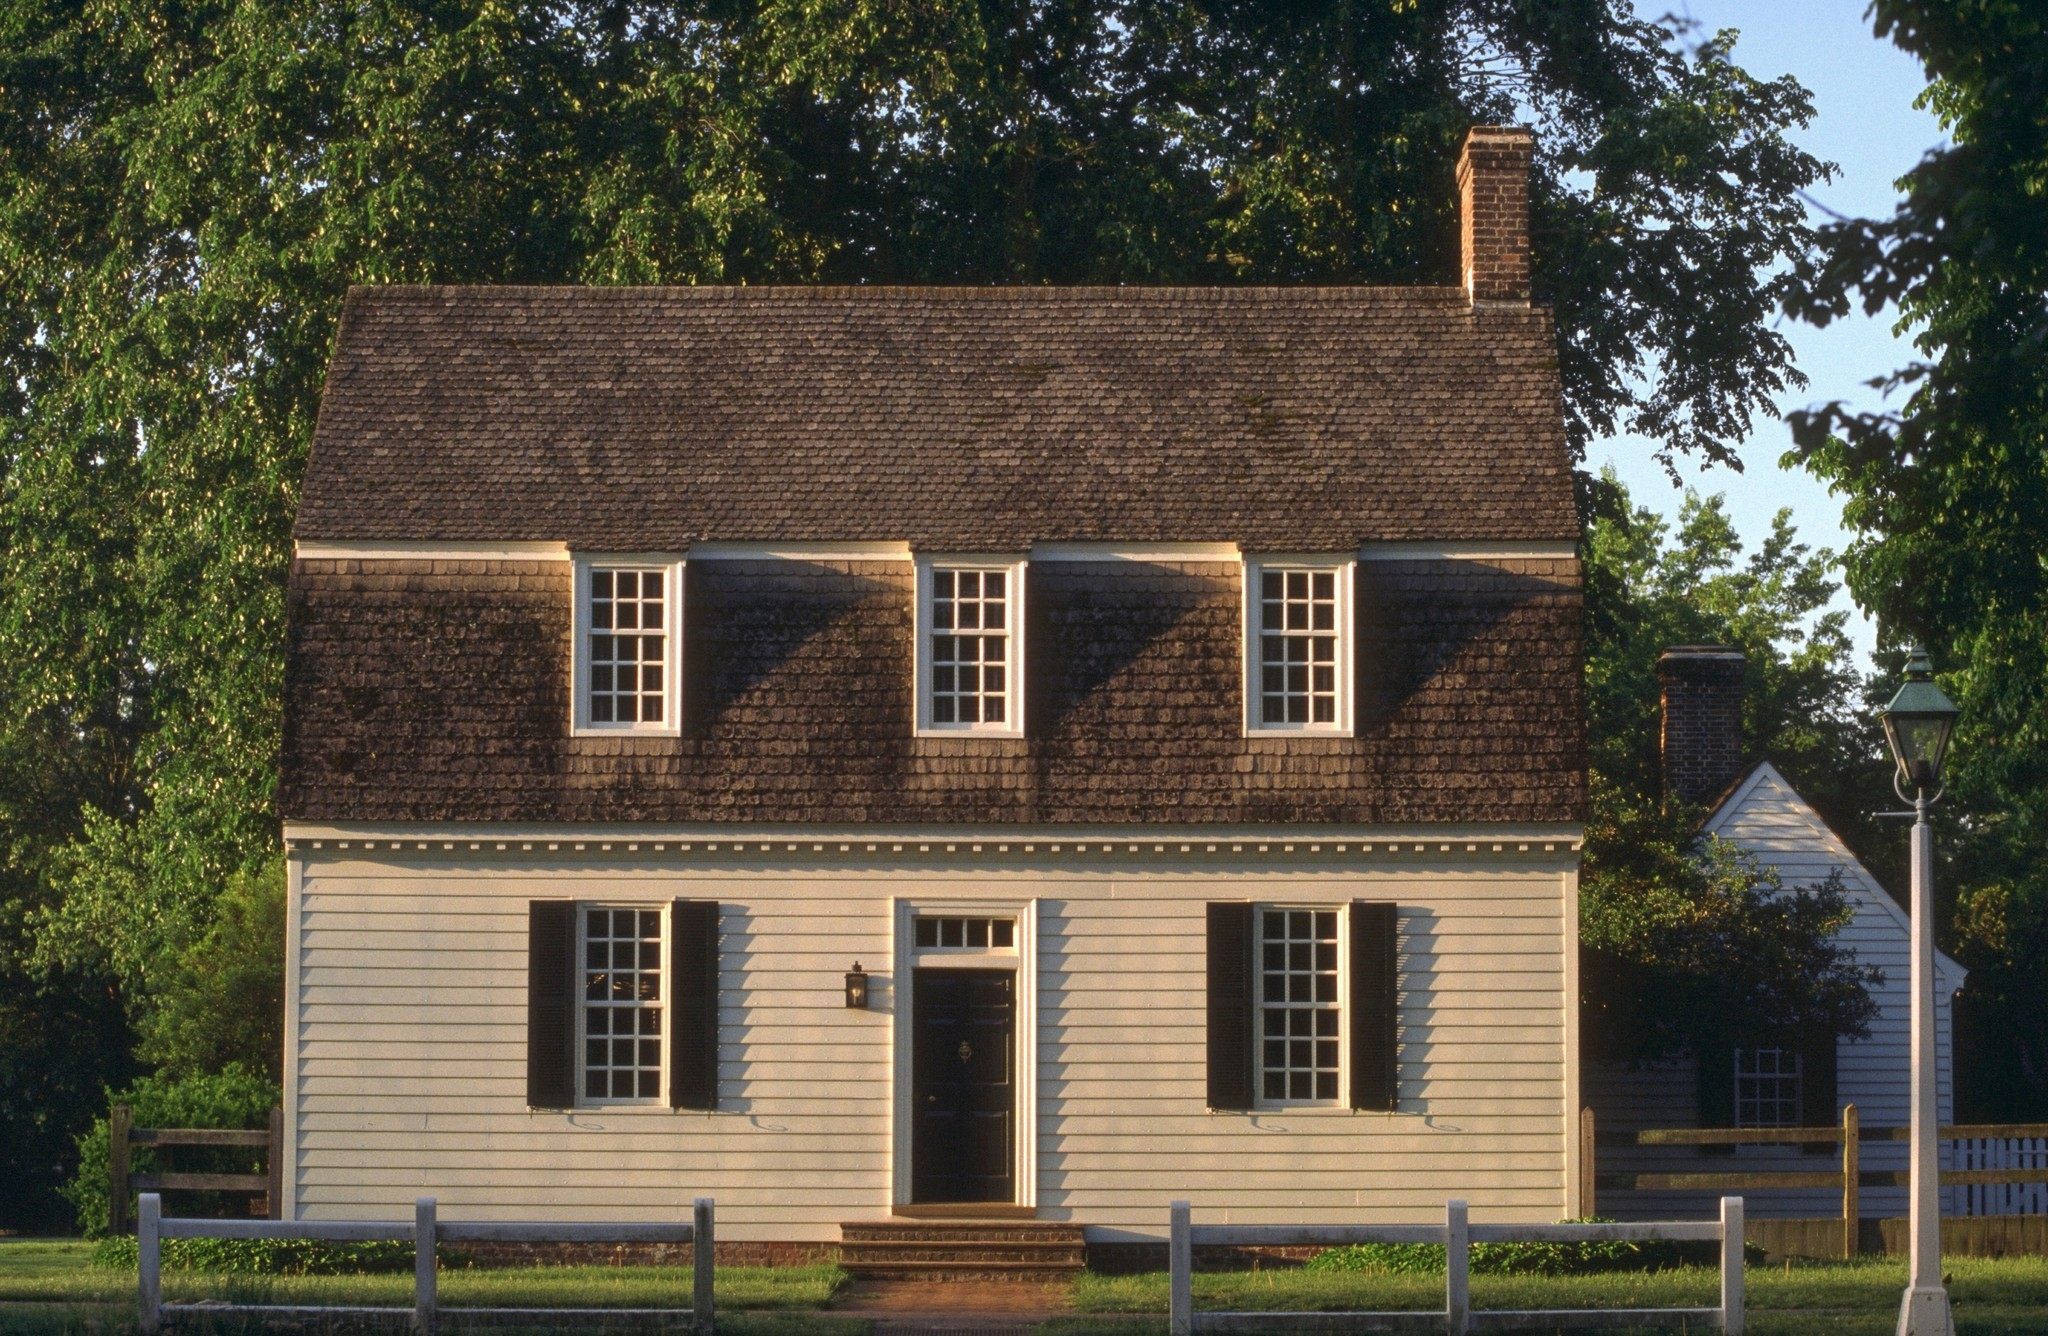 Unusual hotels near Baltimore [Pictures] - Colonial Houses: Historic Lodging in Colonial Williamsburg, Va.